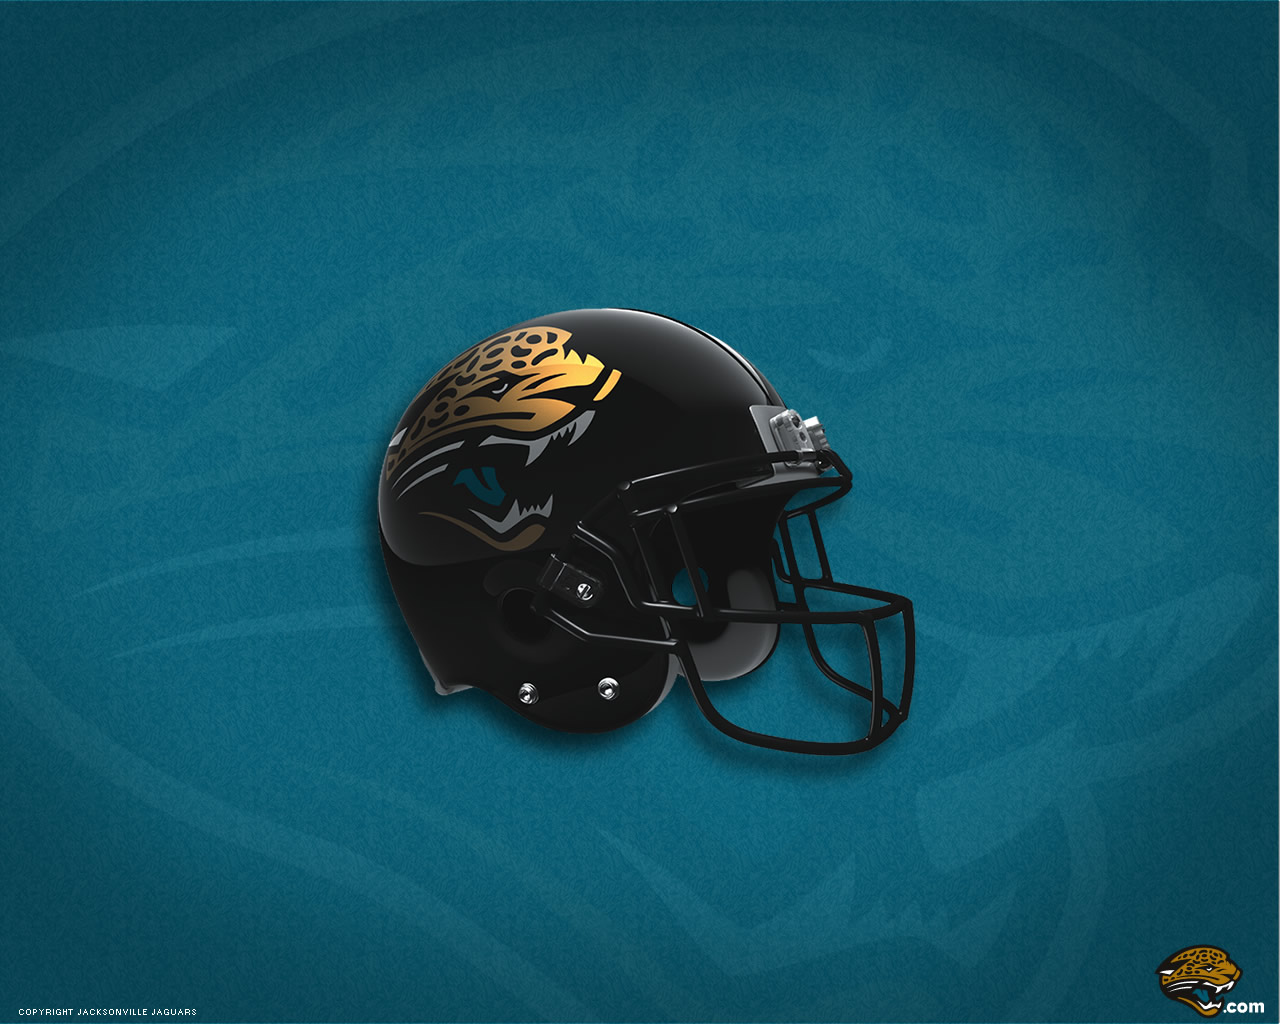 download Widescreen Jacksonville Jaguars Desktop wallpaper 1280x1024